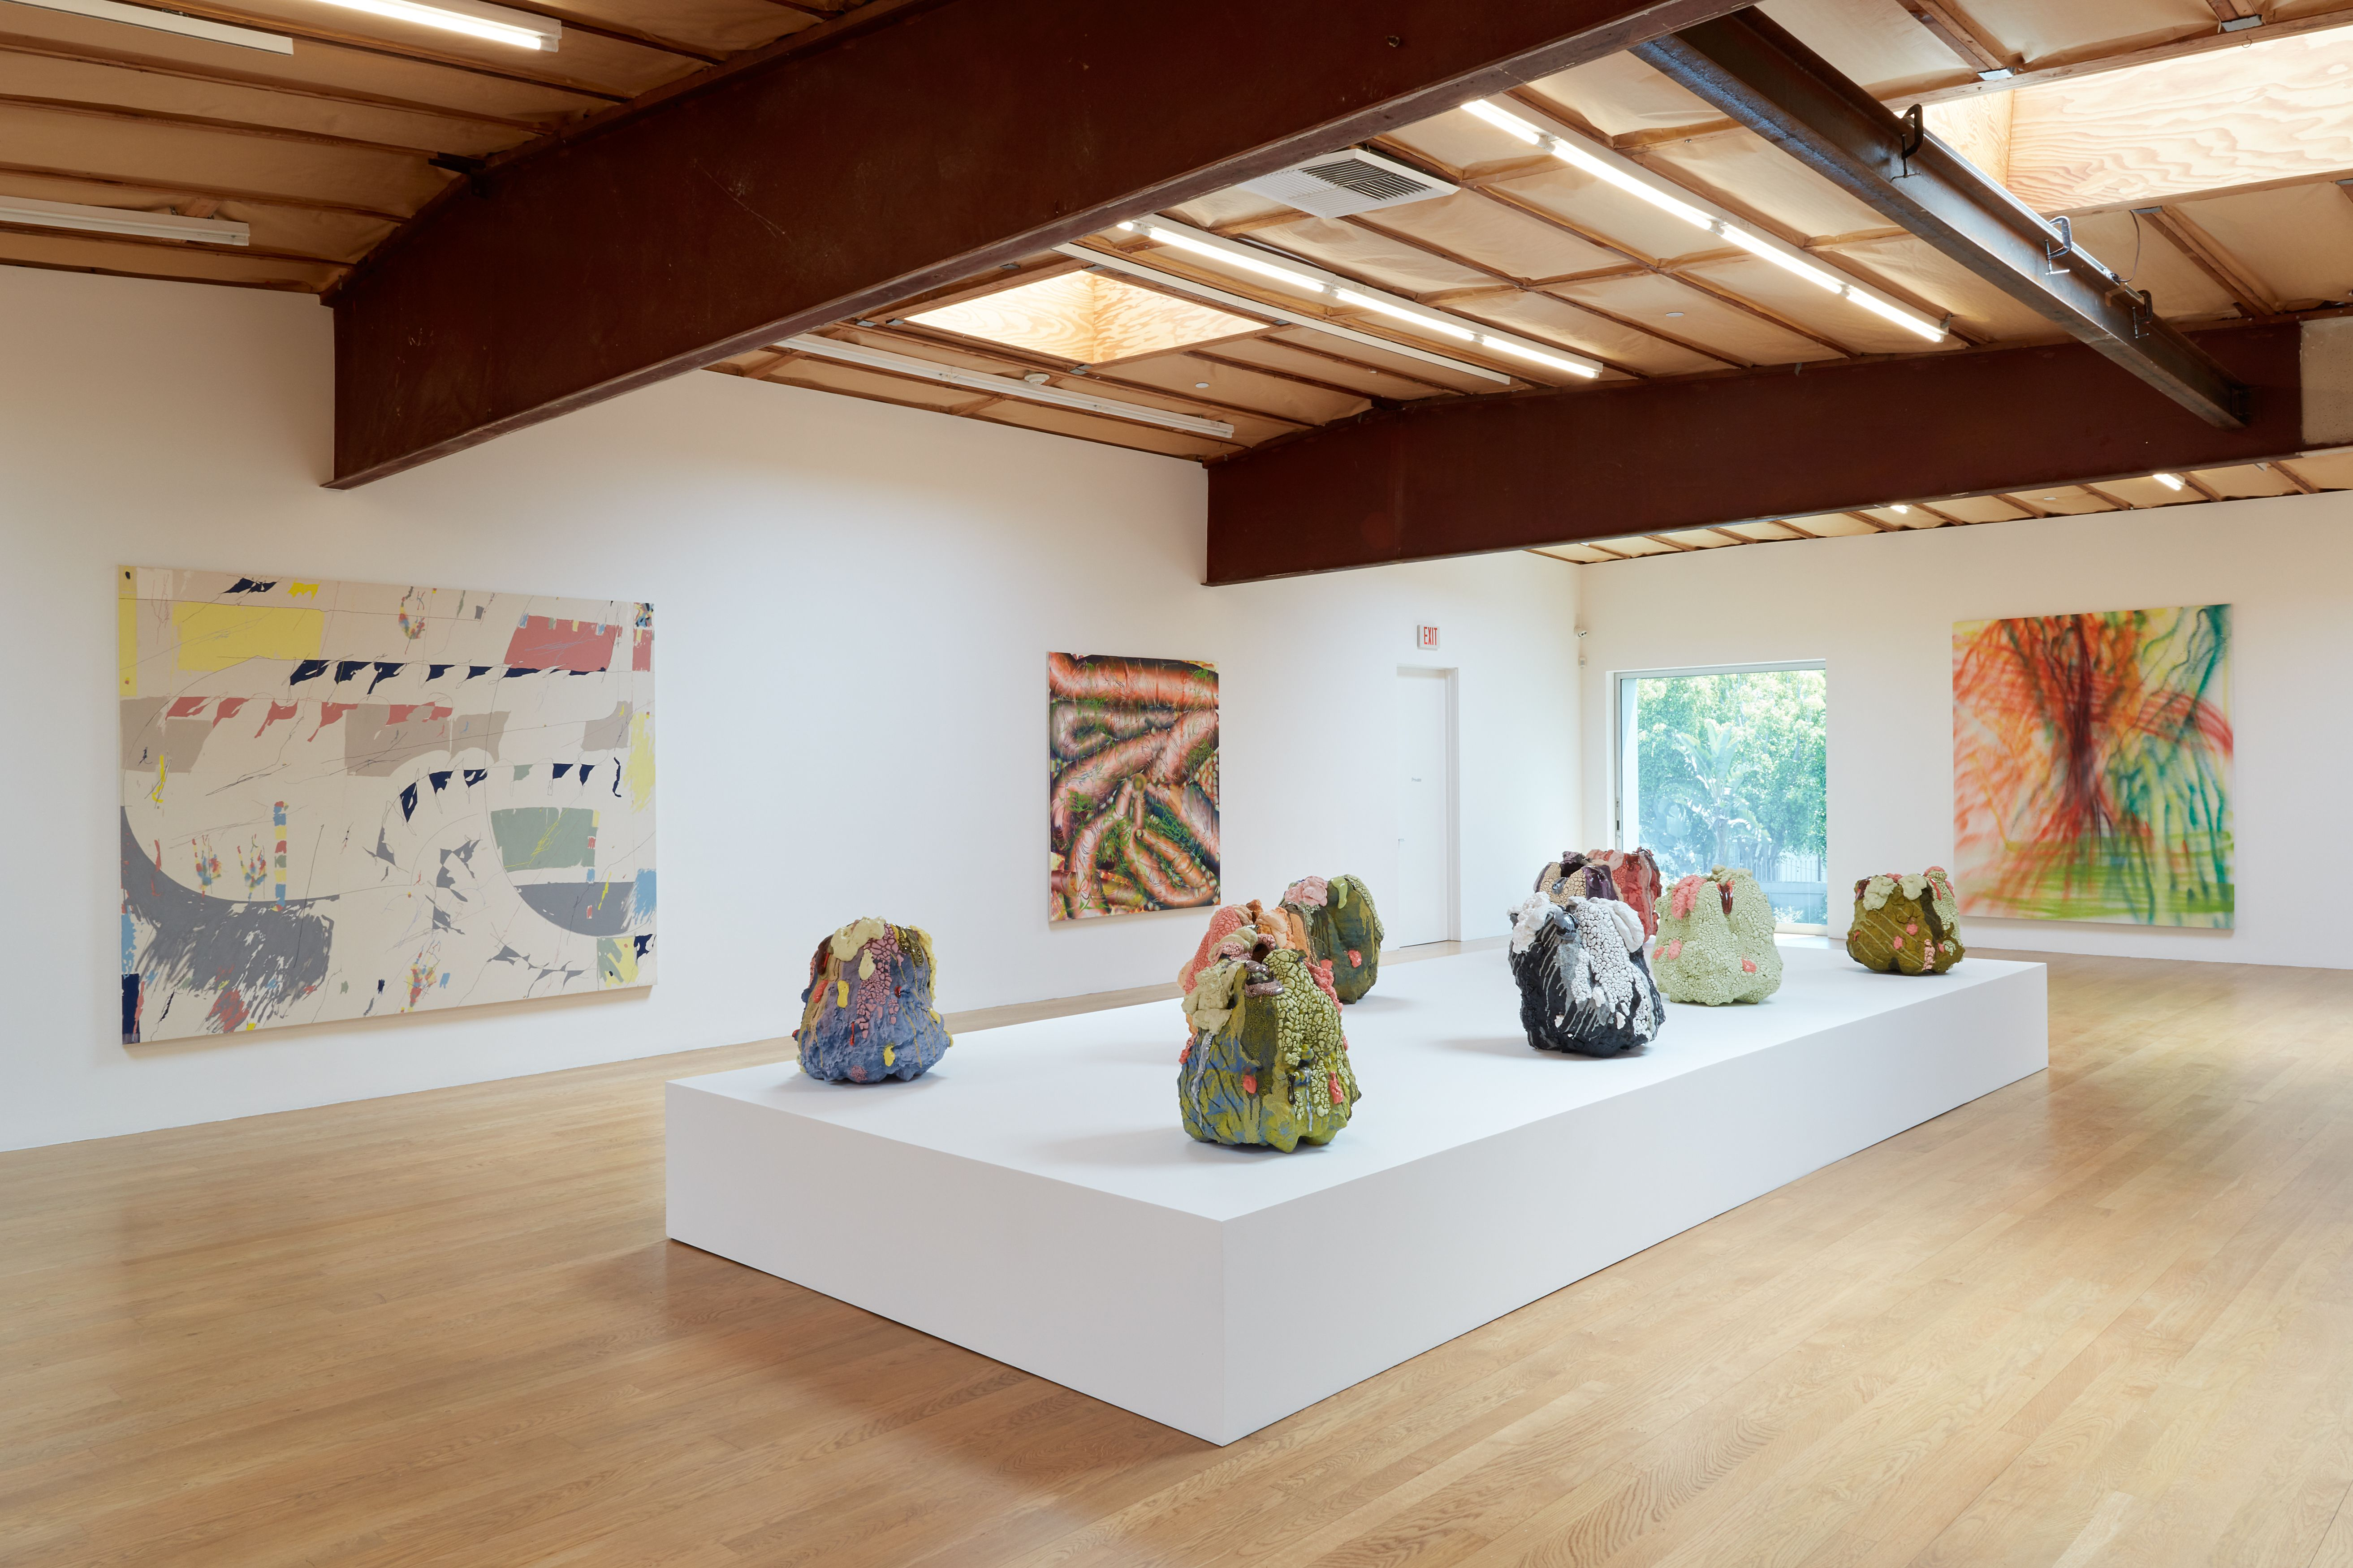 Installation view: On Boxing, Blum and Poe, Los Angeles, May 15 – June 26, 2021. Photo: Photo: Heather Rasmussen. Courtesy of the artists, Blum & Poe.